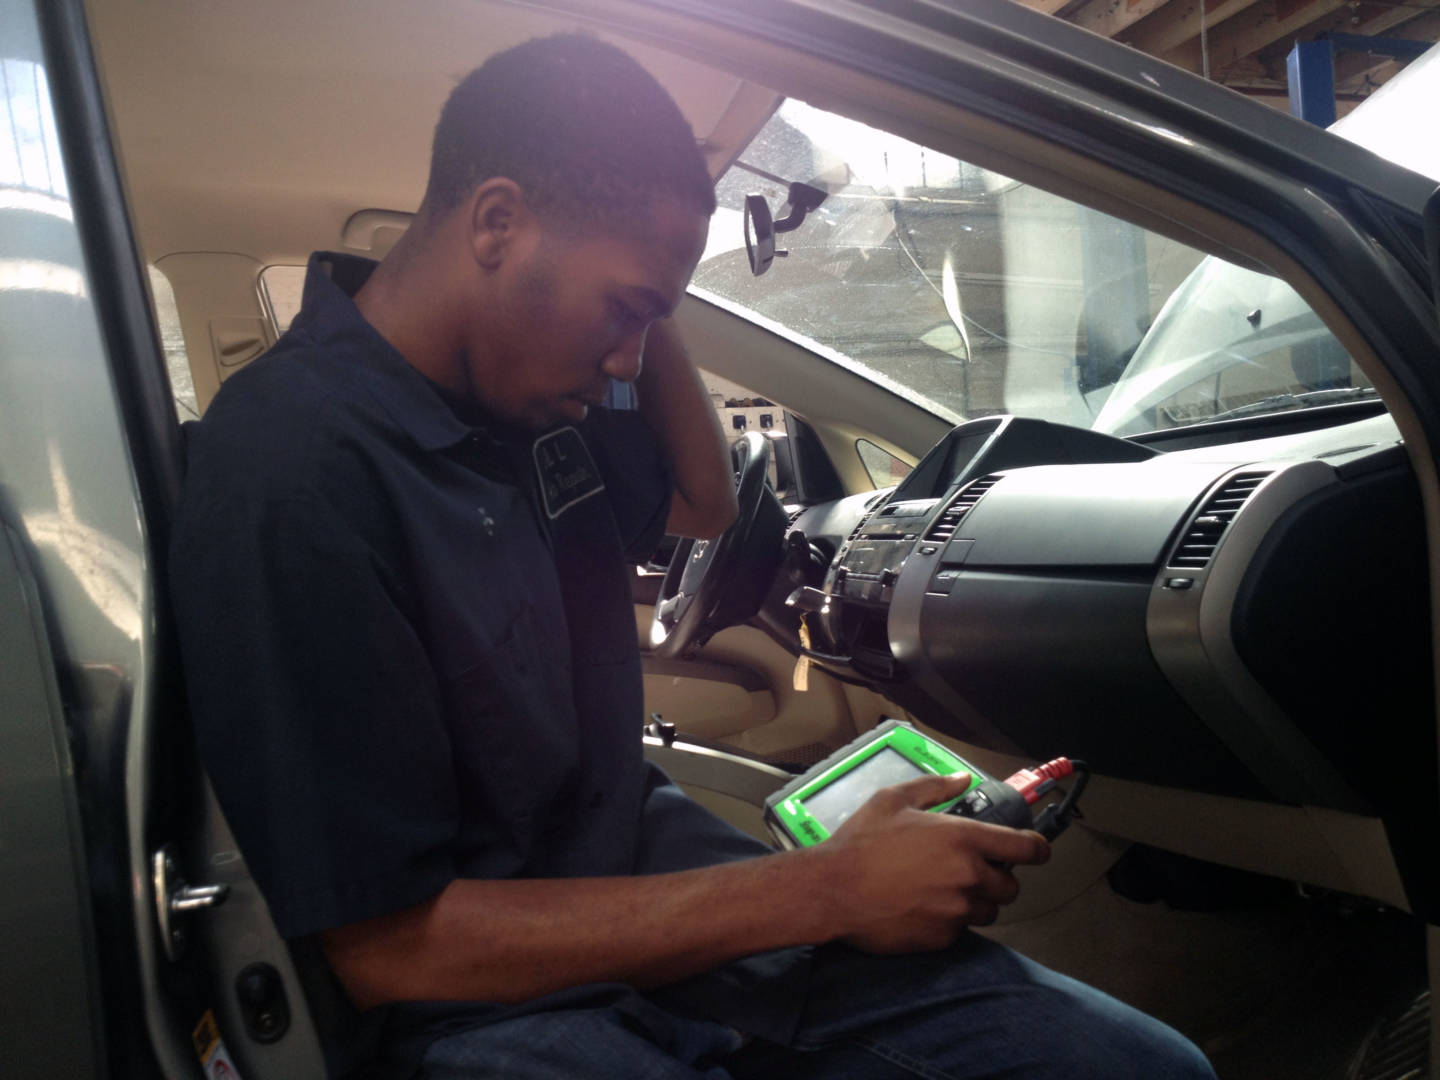 Kris uses specialized equipment to look at information on a car's computer.